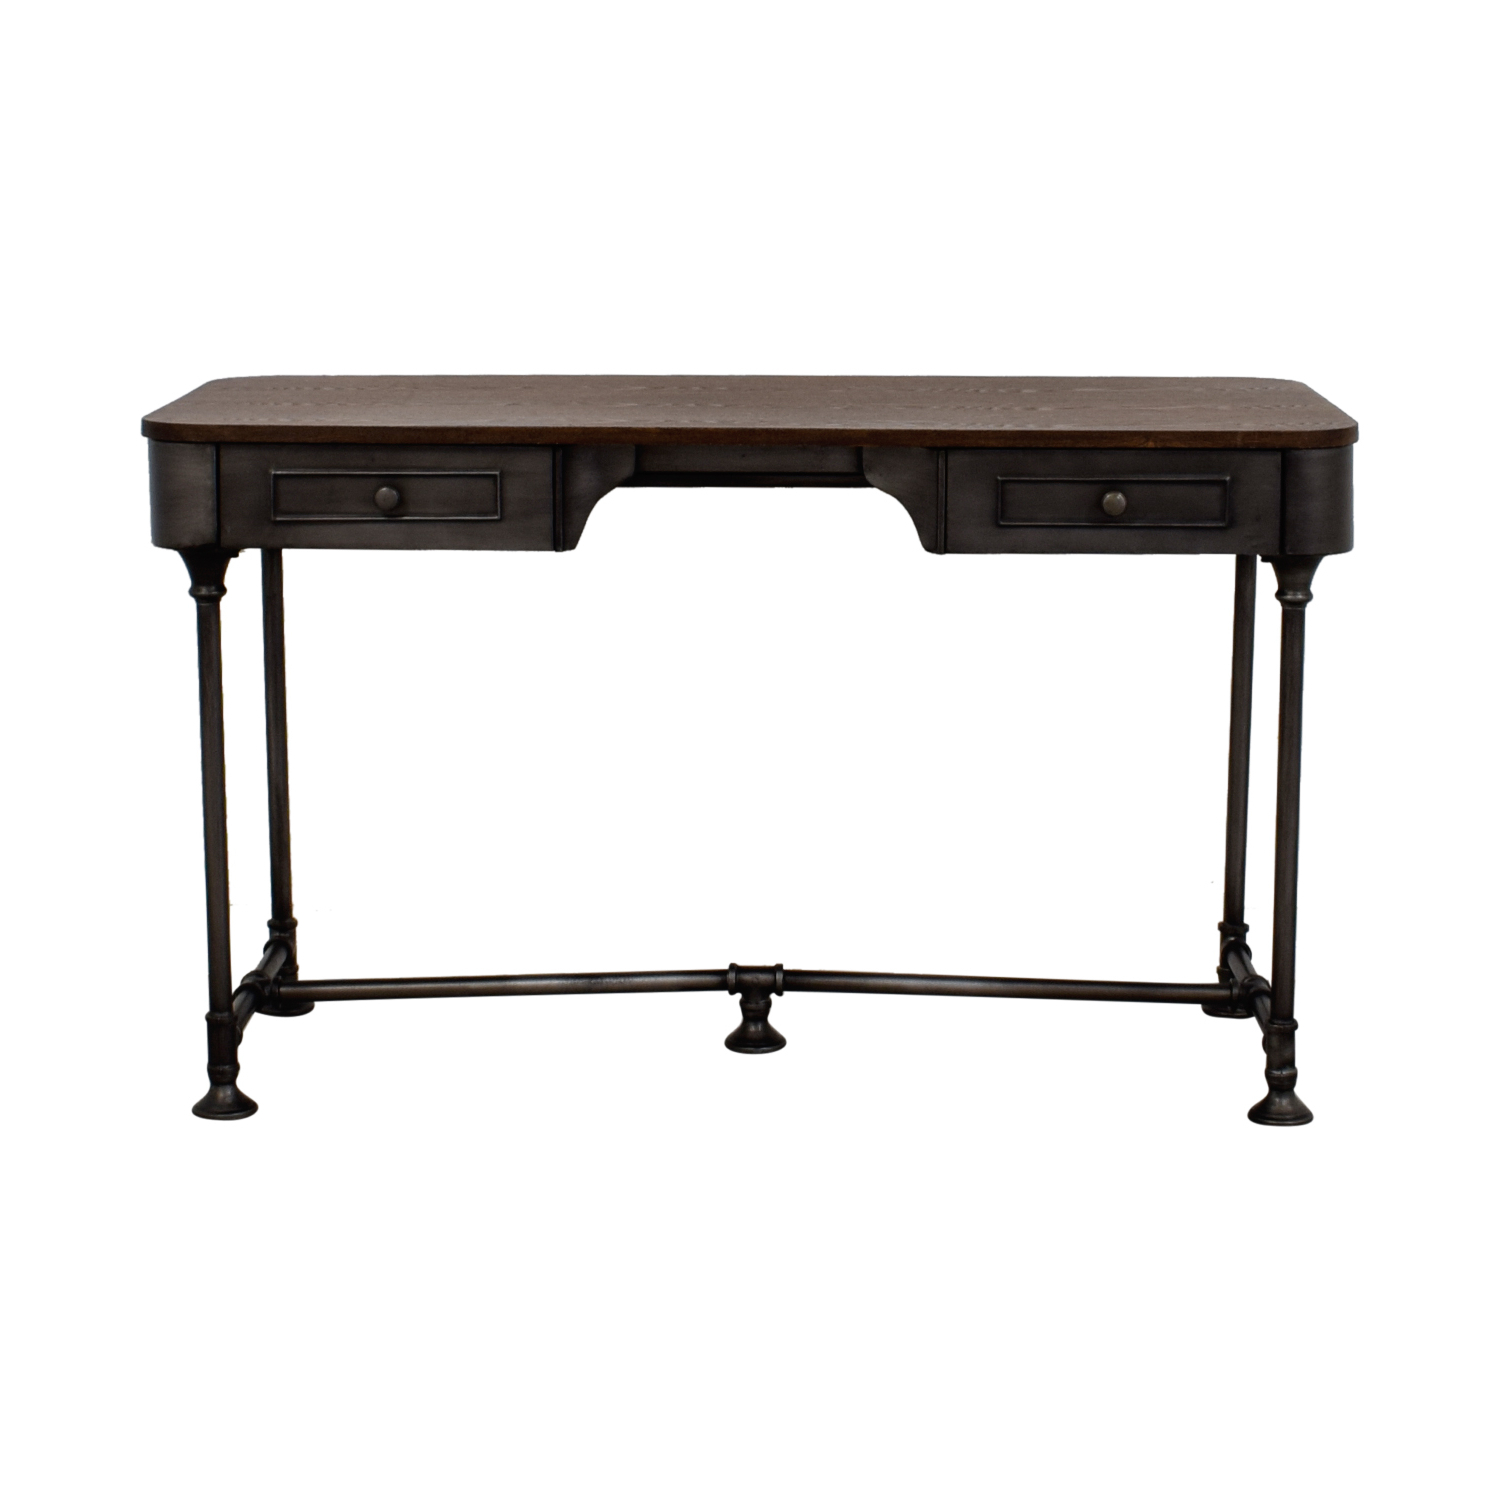 [%69% Off – Wildon Home Wildon Home Writing Desk / Tables In Recent Sideboards By Wildon Home|sideboards By Wildon Home With Regard To Most Recent 69% Off – Wildon Home Wildon Home Writing Desk / Tables|well Known Sideboards By Wildon Home Inside 69% Off – Wildon Home Wildon Home Writing Desk / Tables|latest 69% Off – Wildon Home Wildon Home Writing Desk / Tables Within Sideboards By Wildon Home%] (View 16 of 20)